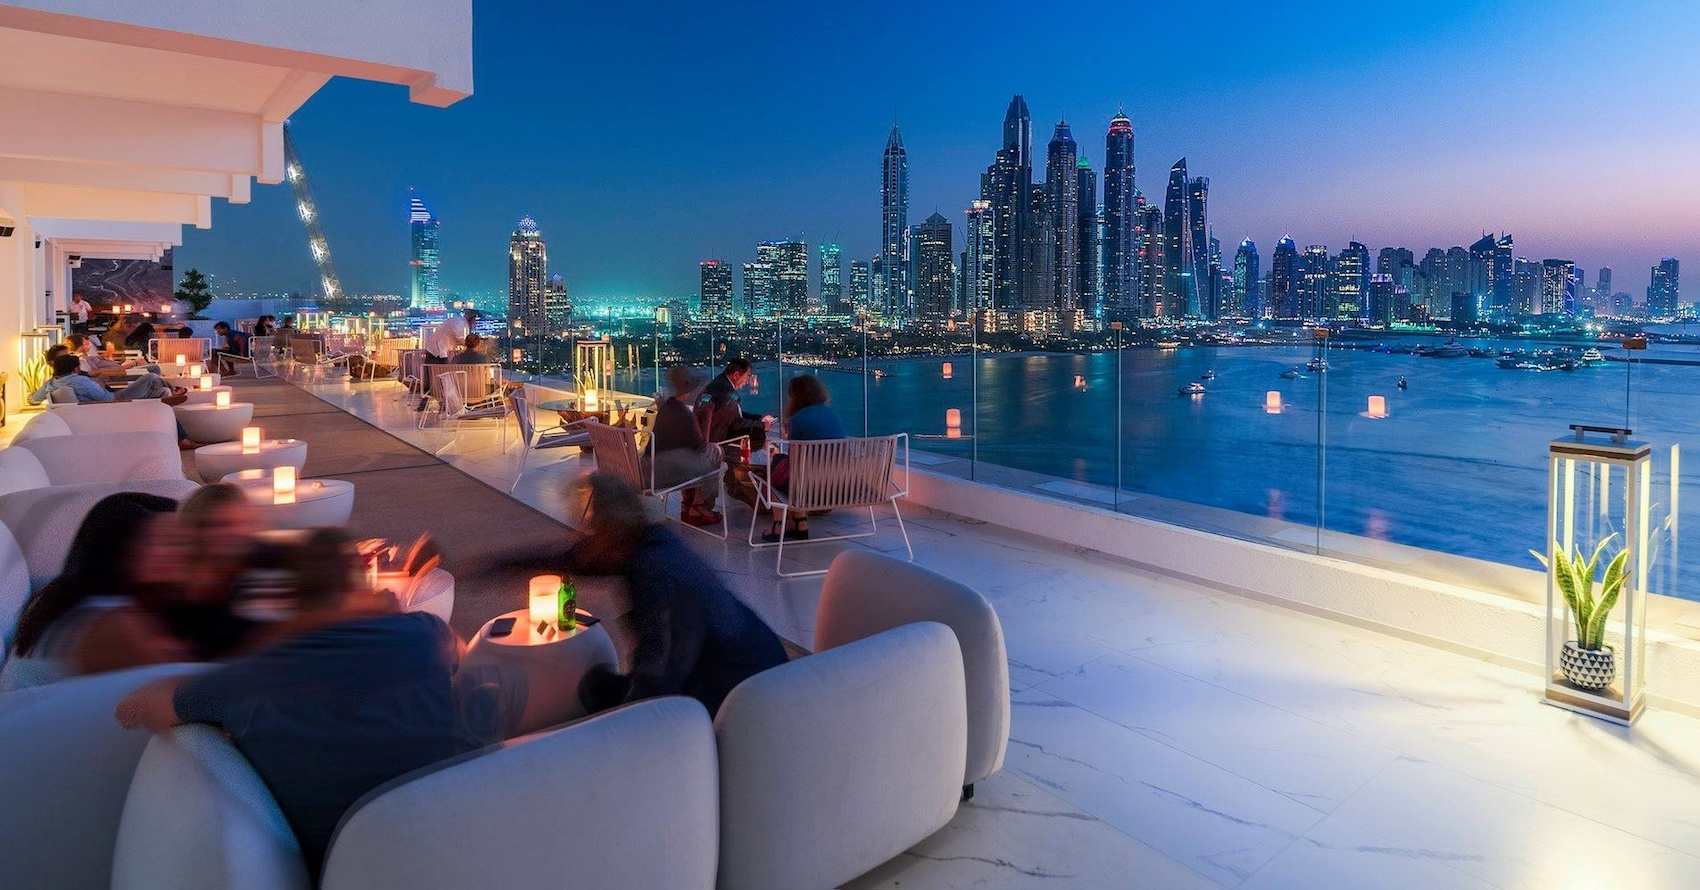 outdoor-bars-dubai-outdoor-bars-in-dubai-nightlife-desffff-Cropped